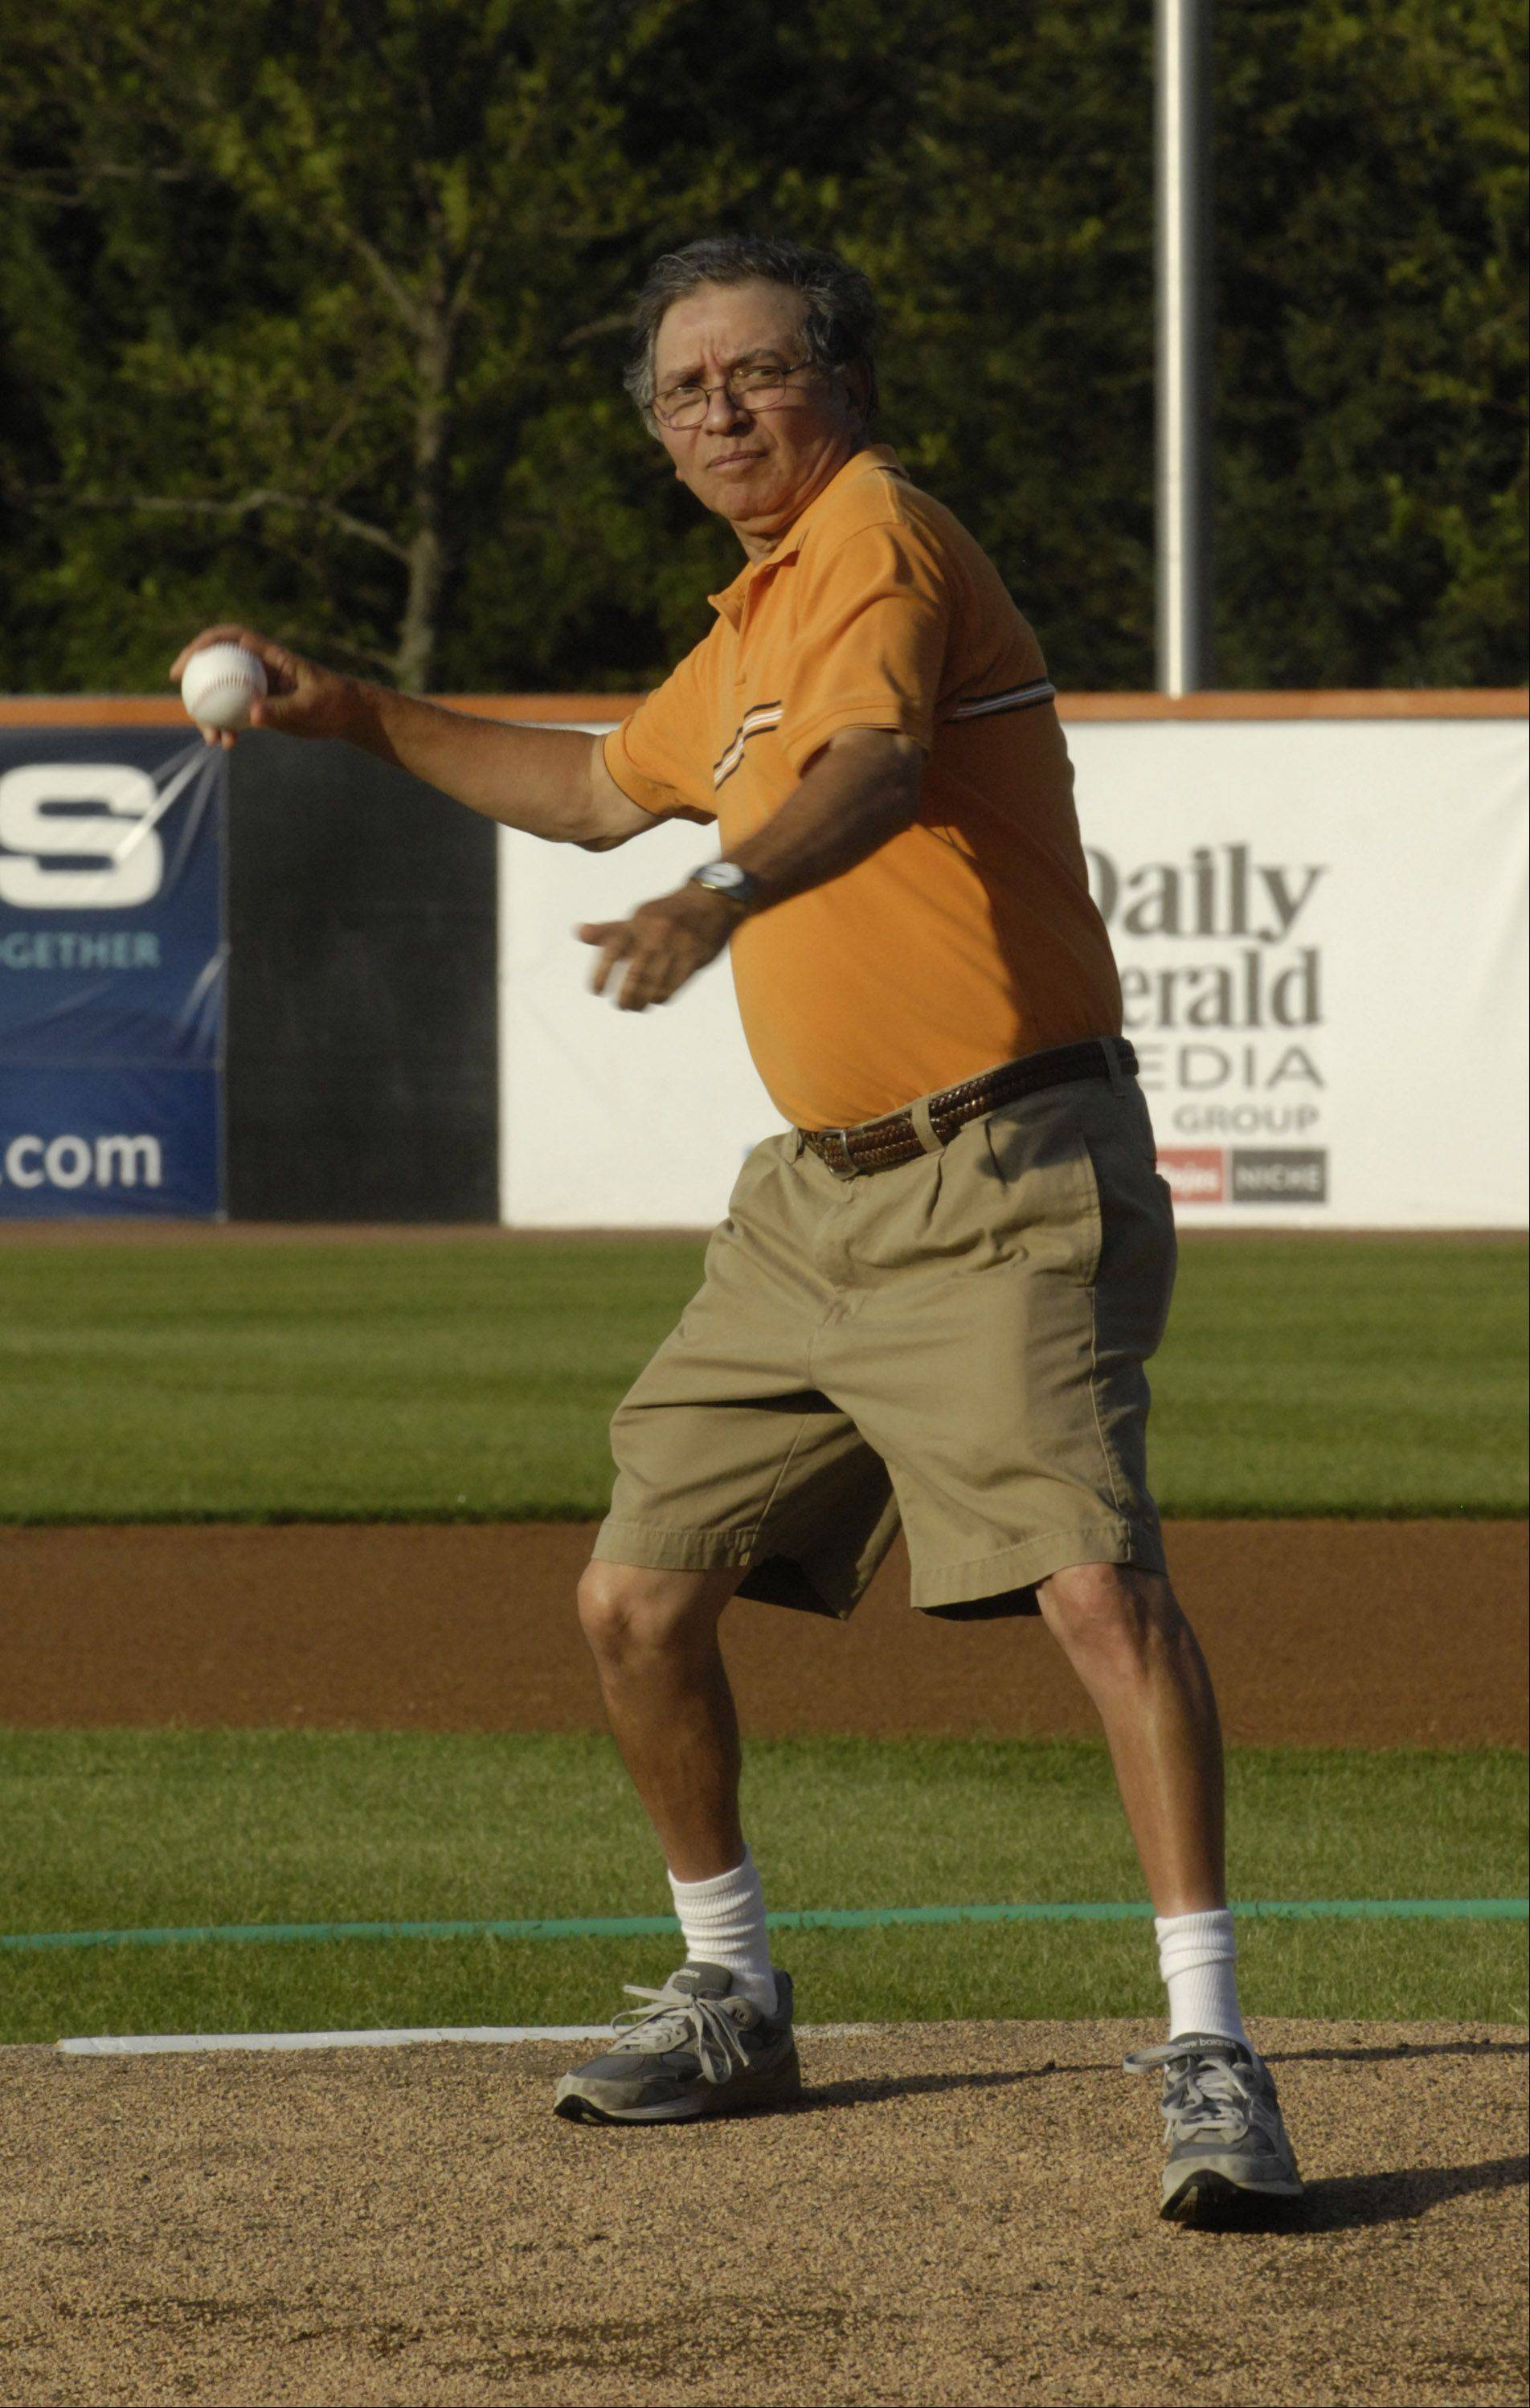 JOE LEWNARD/jlewnard@dailyherald.com Daily Herald Sports Columnist Mike Imrem throws out the first pitch before Wednesday's Schaumburg Boomers game.